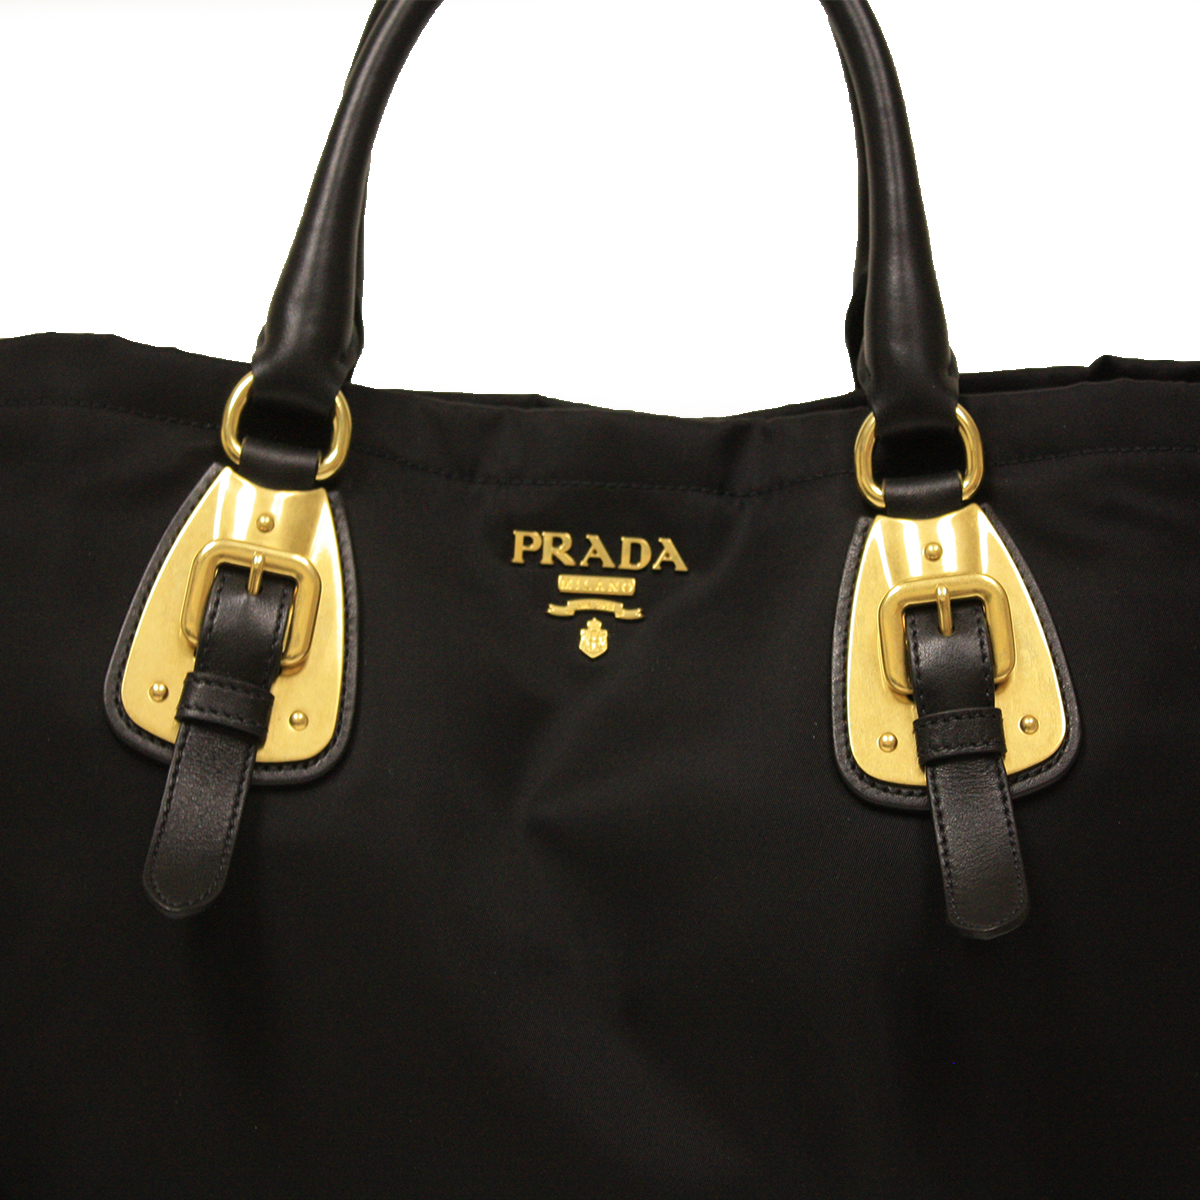 prada diaper bag gold hardware